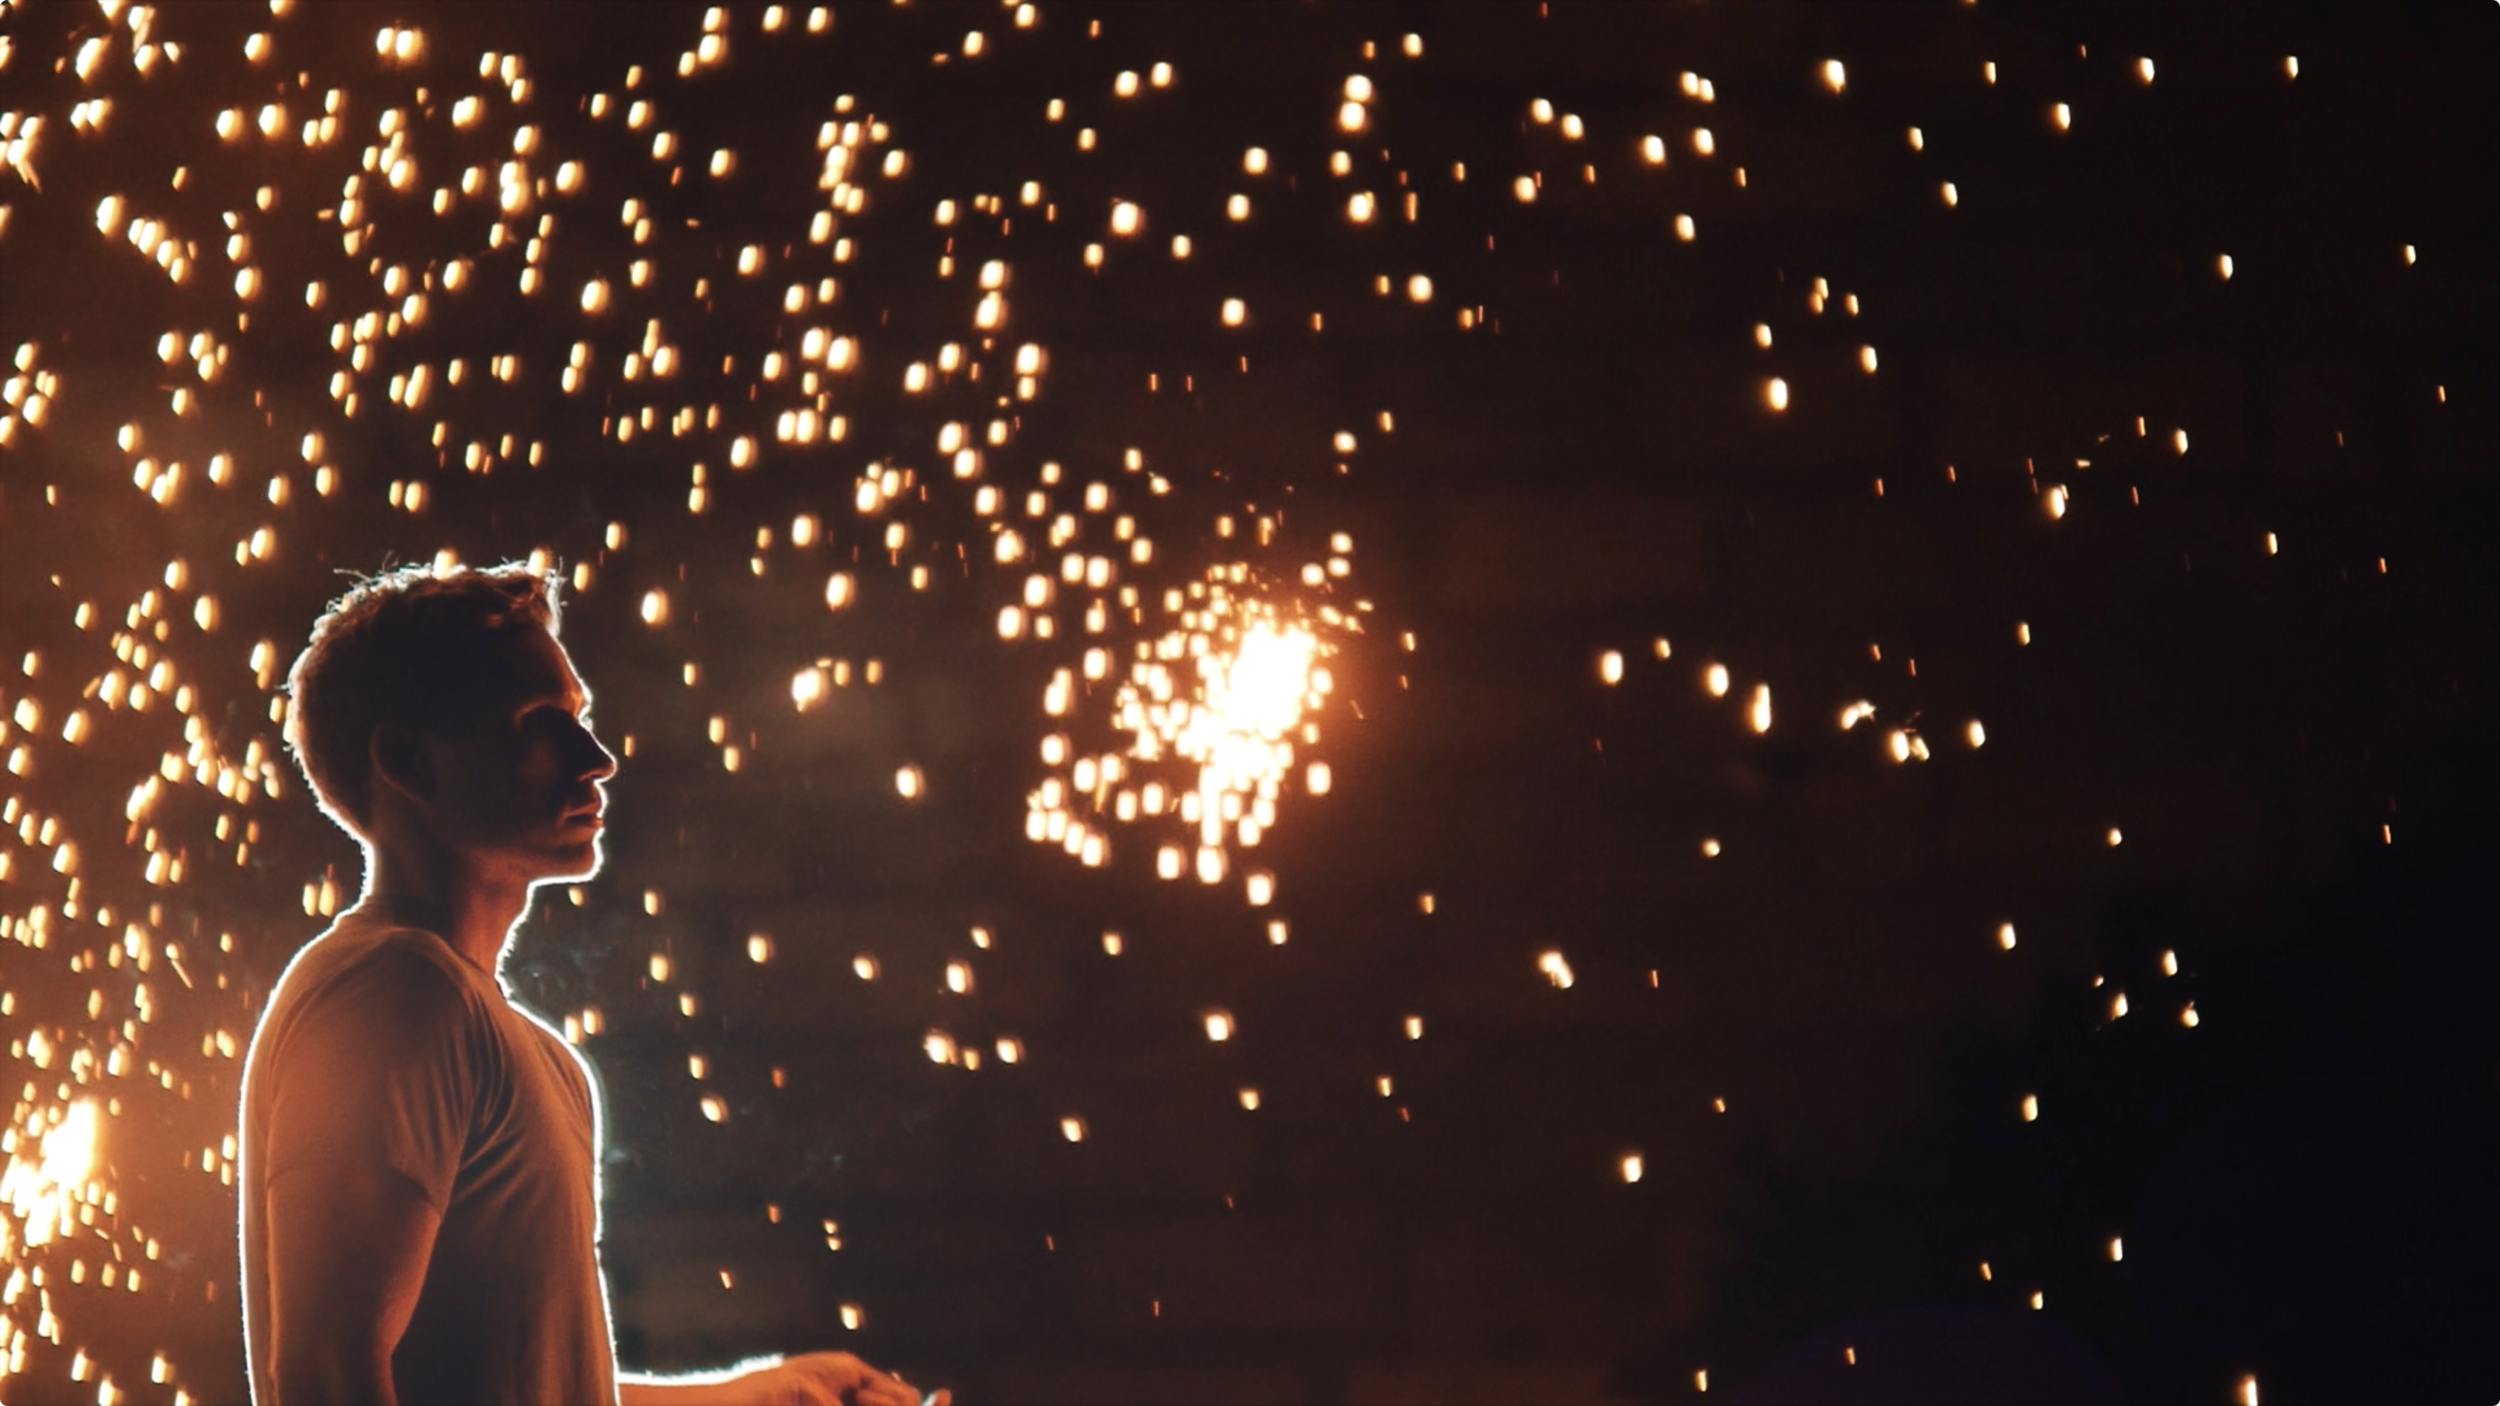 mid-action shot from our indie music video with a steel wool sparkler